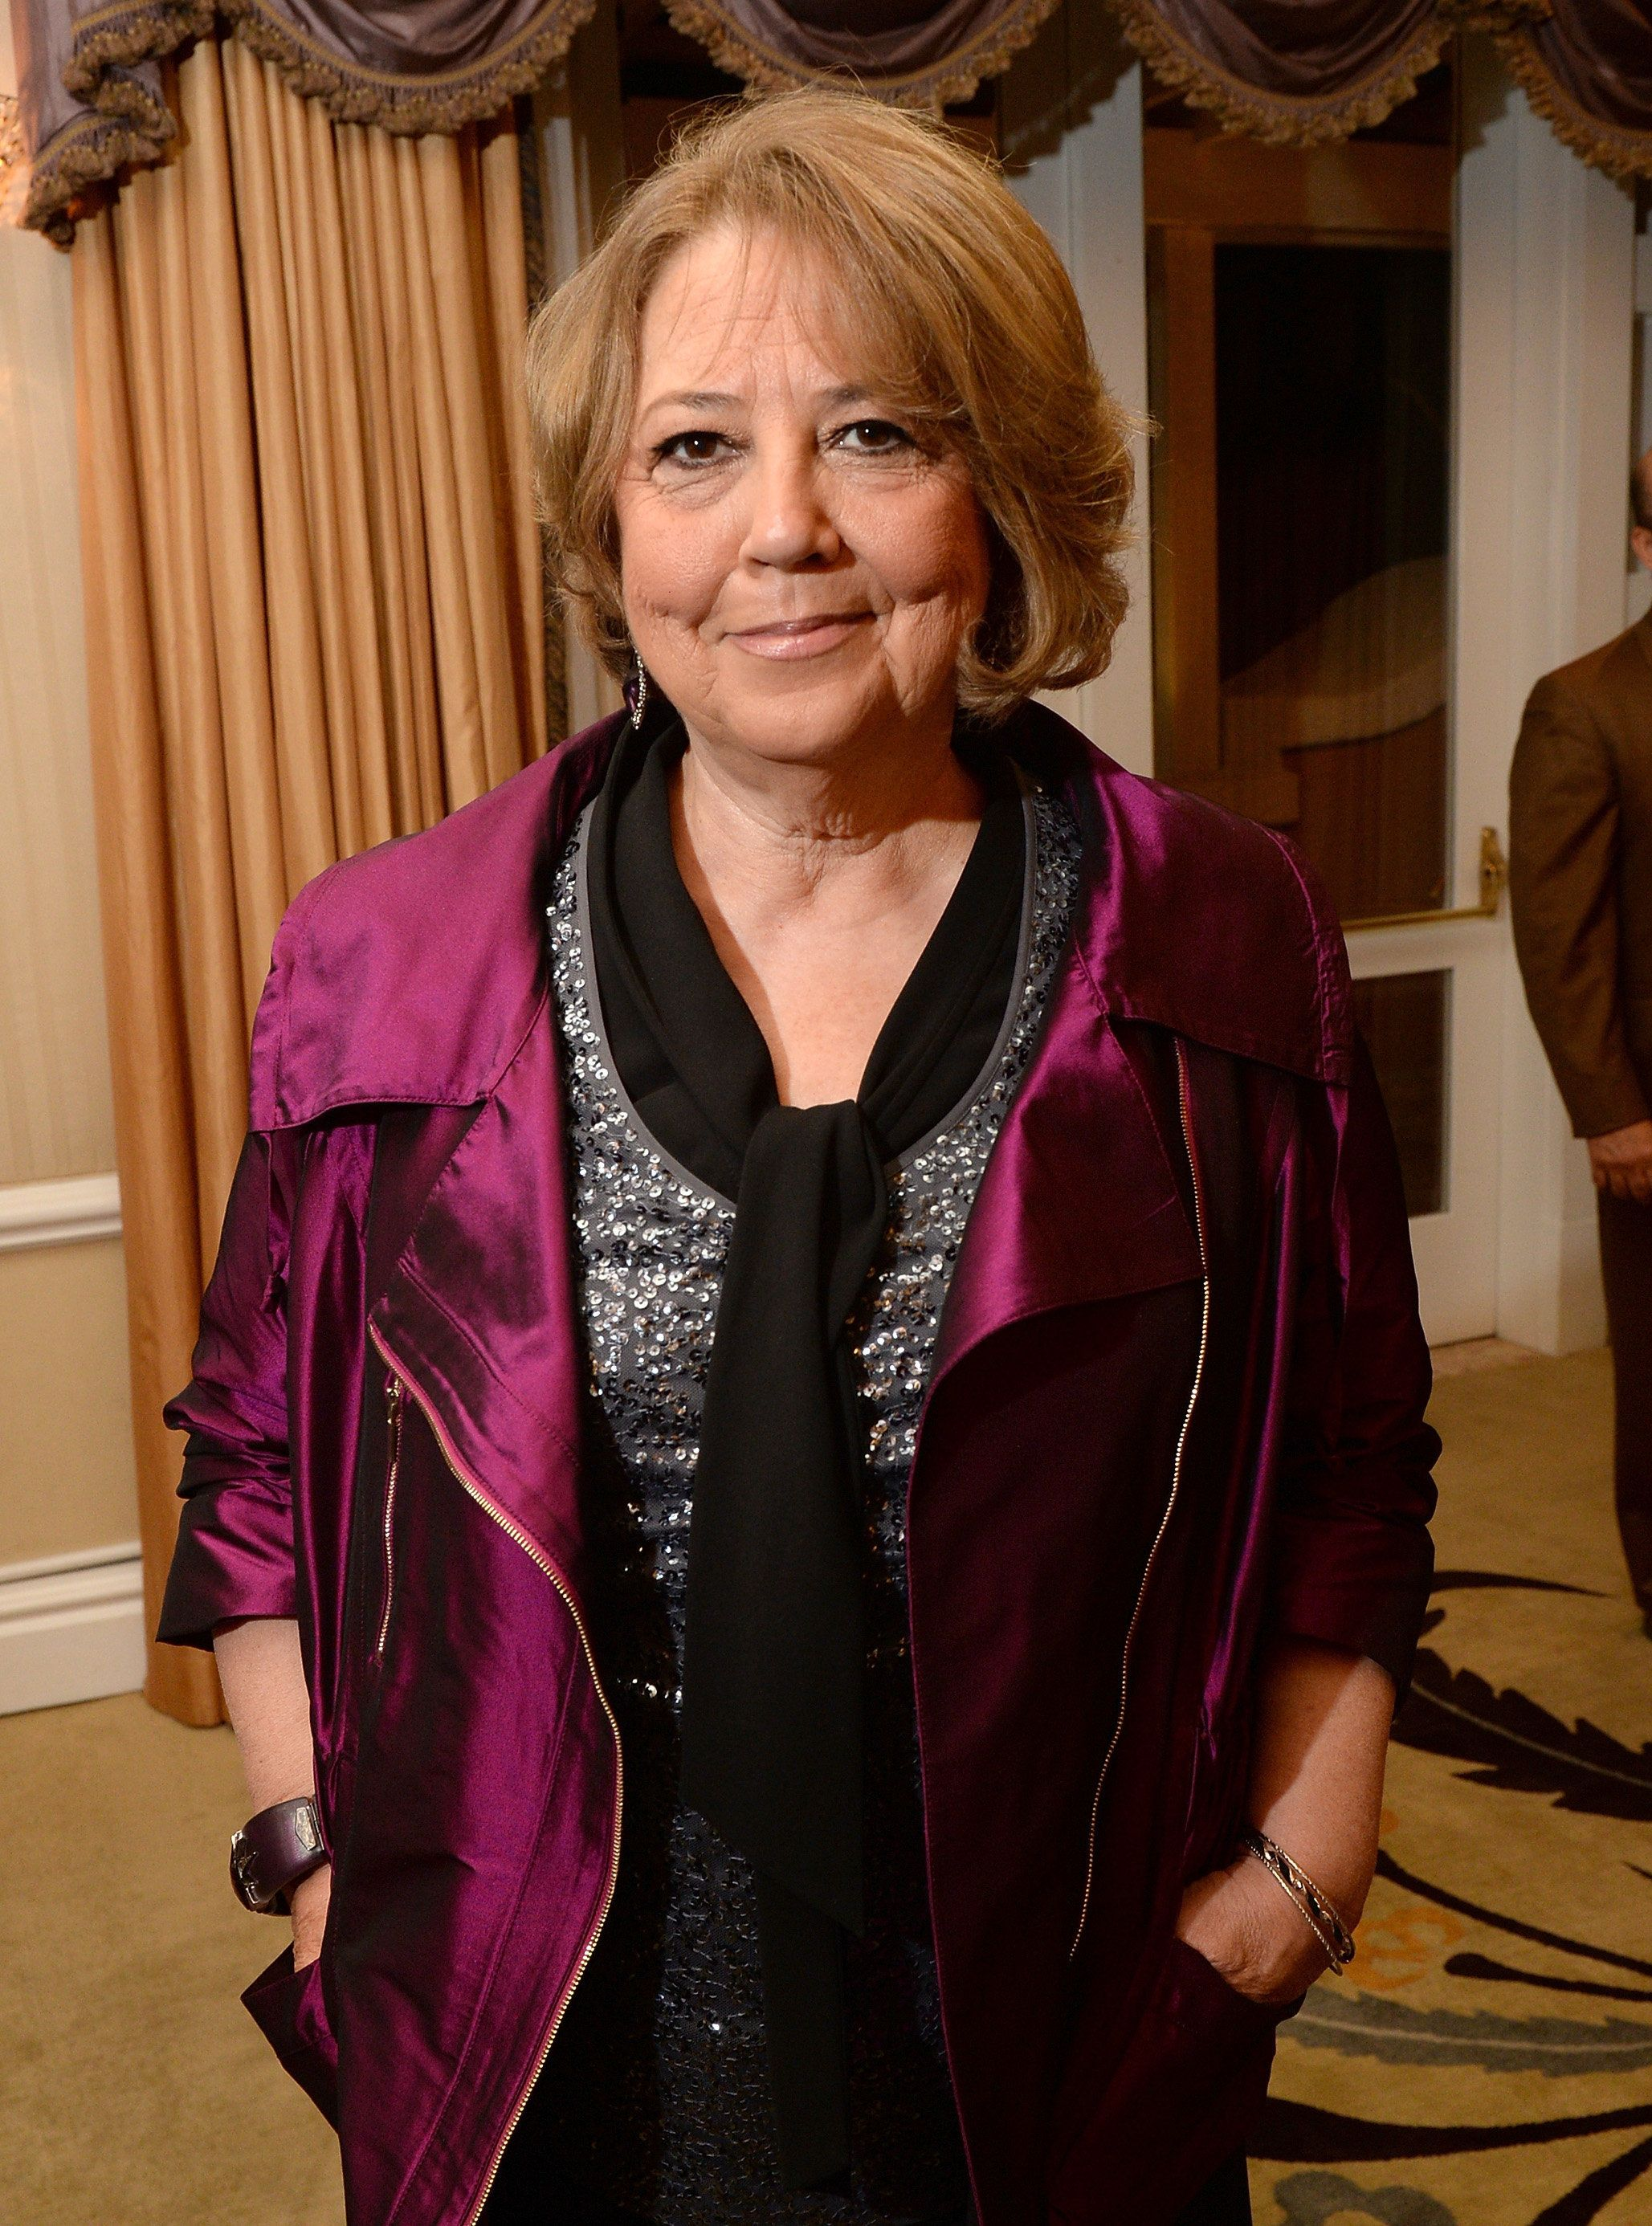 BEVERLY HILLS, CA - OCTOBER 18:  Honoree Linda Bloodworth-Thomason attends the 9th Annual GLSEN Respect Awards at Beverly Hills Hotel on October 18, 2013 in Beverly Hills, California.  (Photo by Jason Kempin/Getty Images for GLSEN)